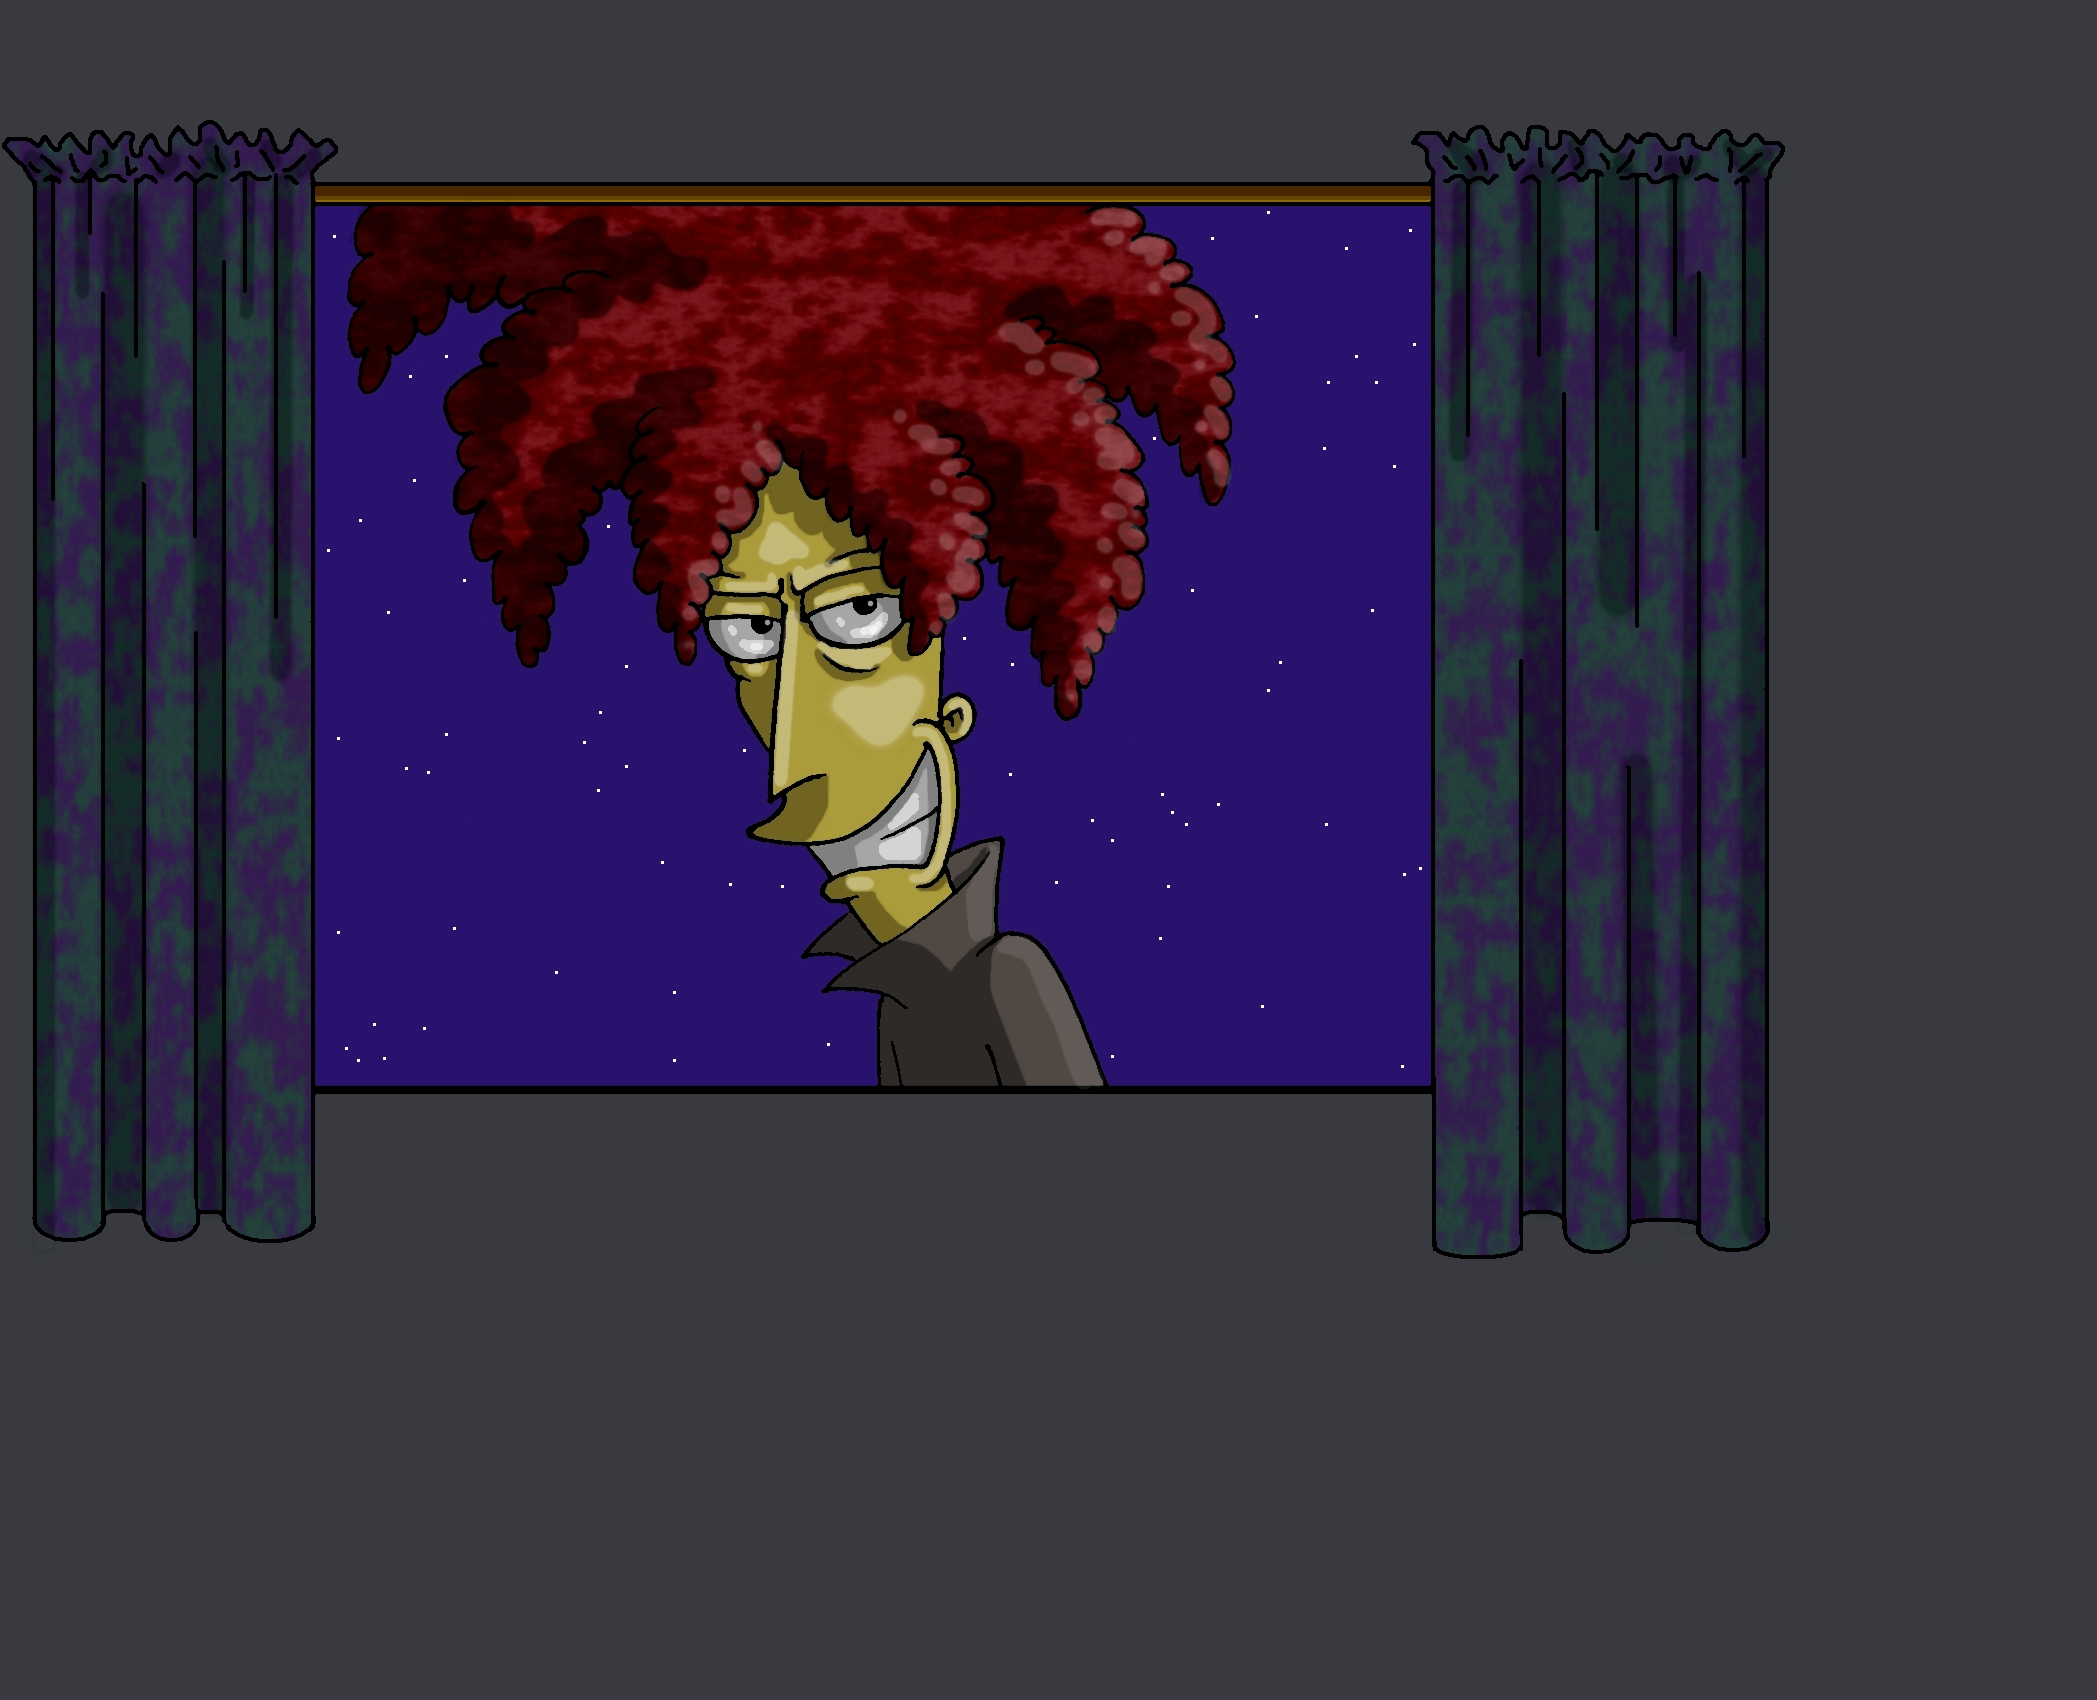 Sideshow Bob is Watching You by Nevuela